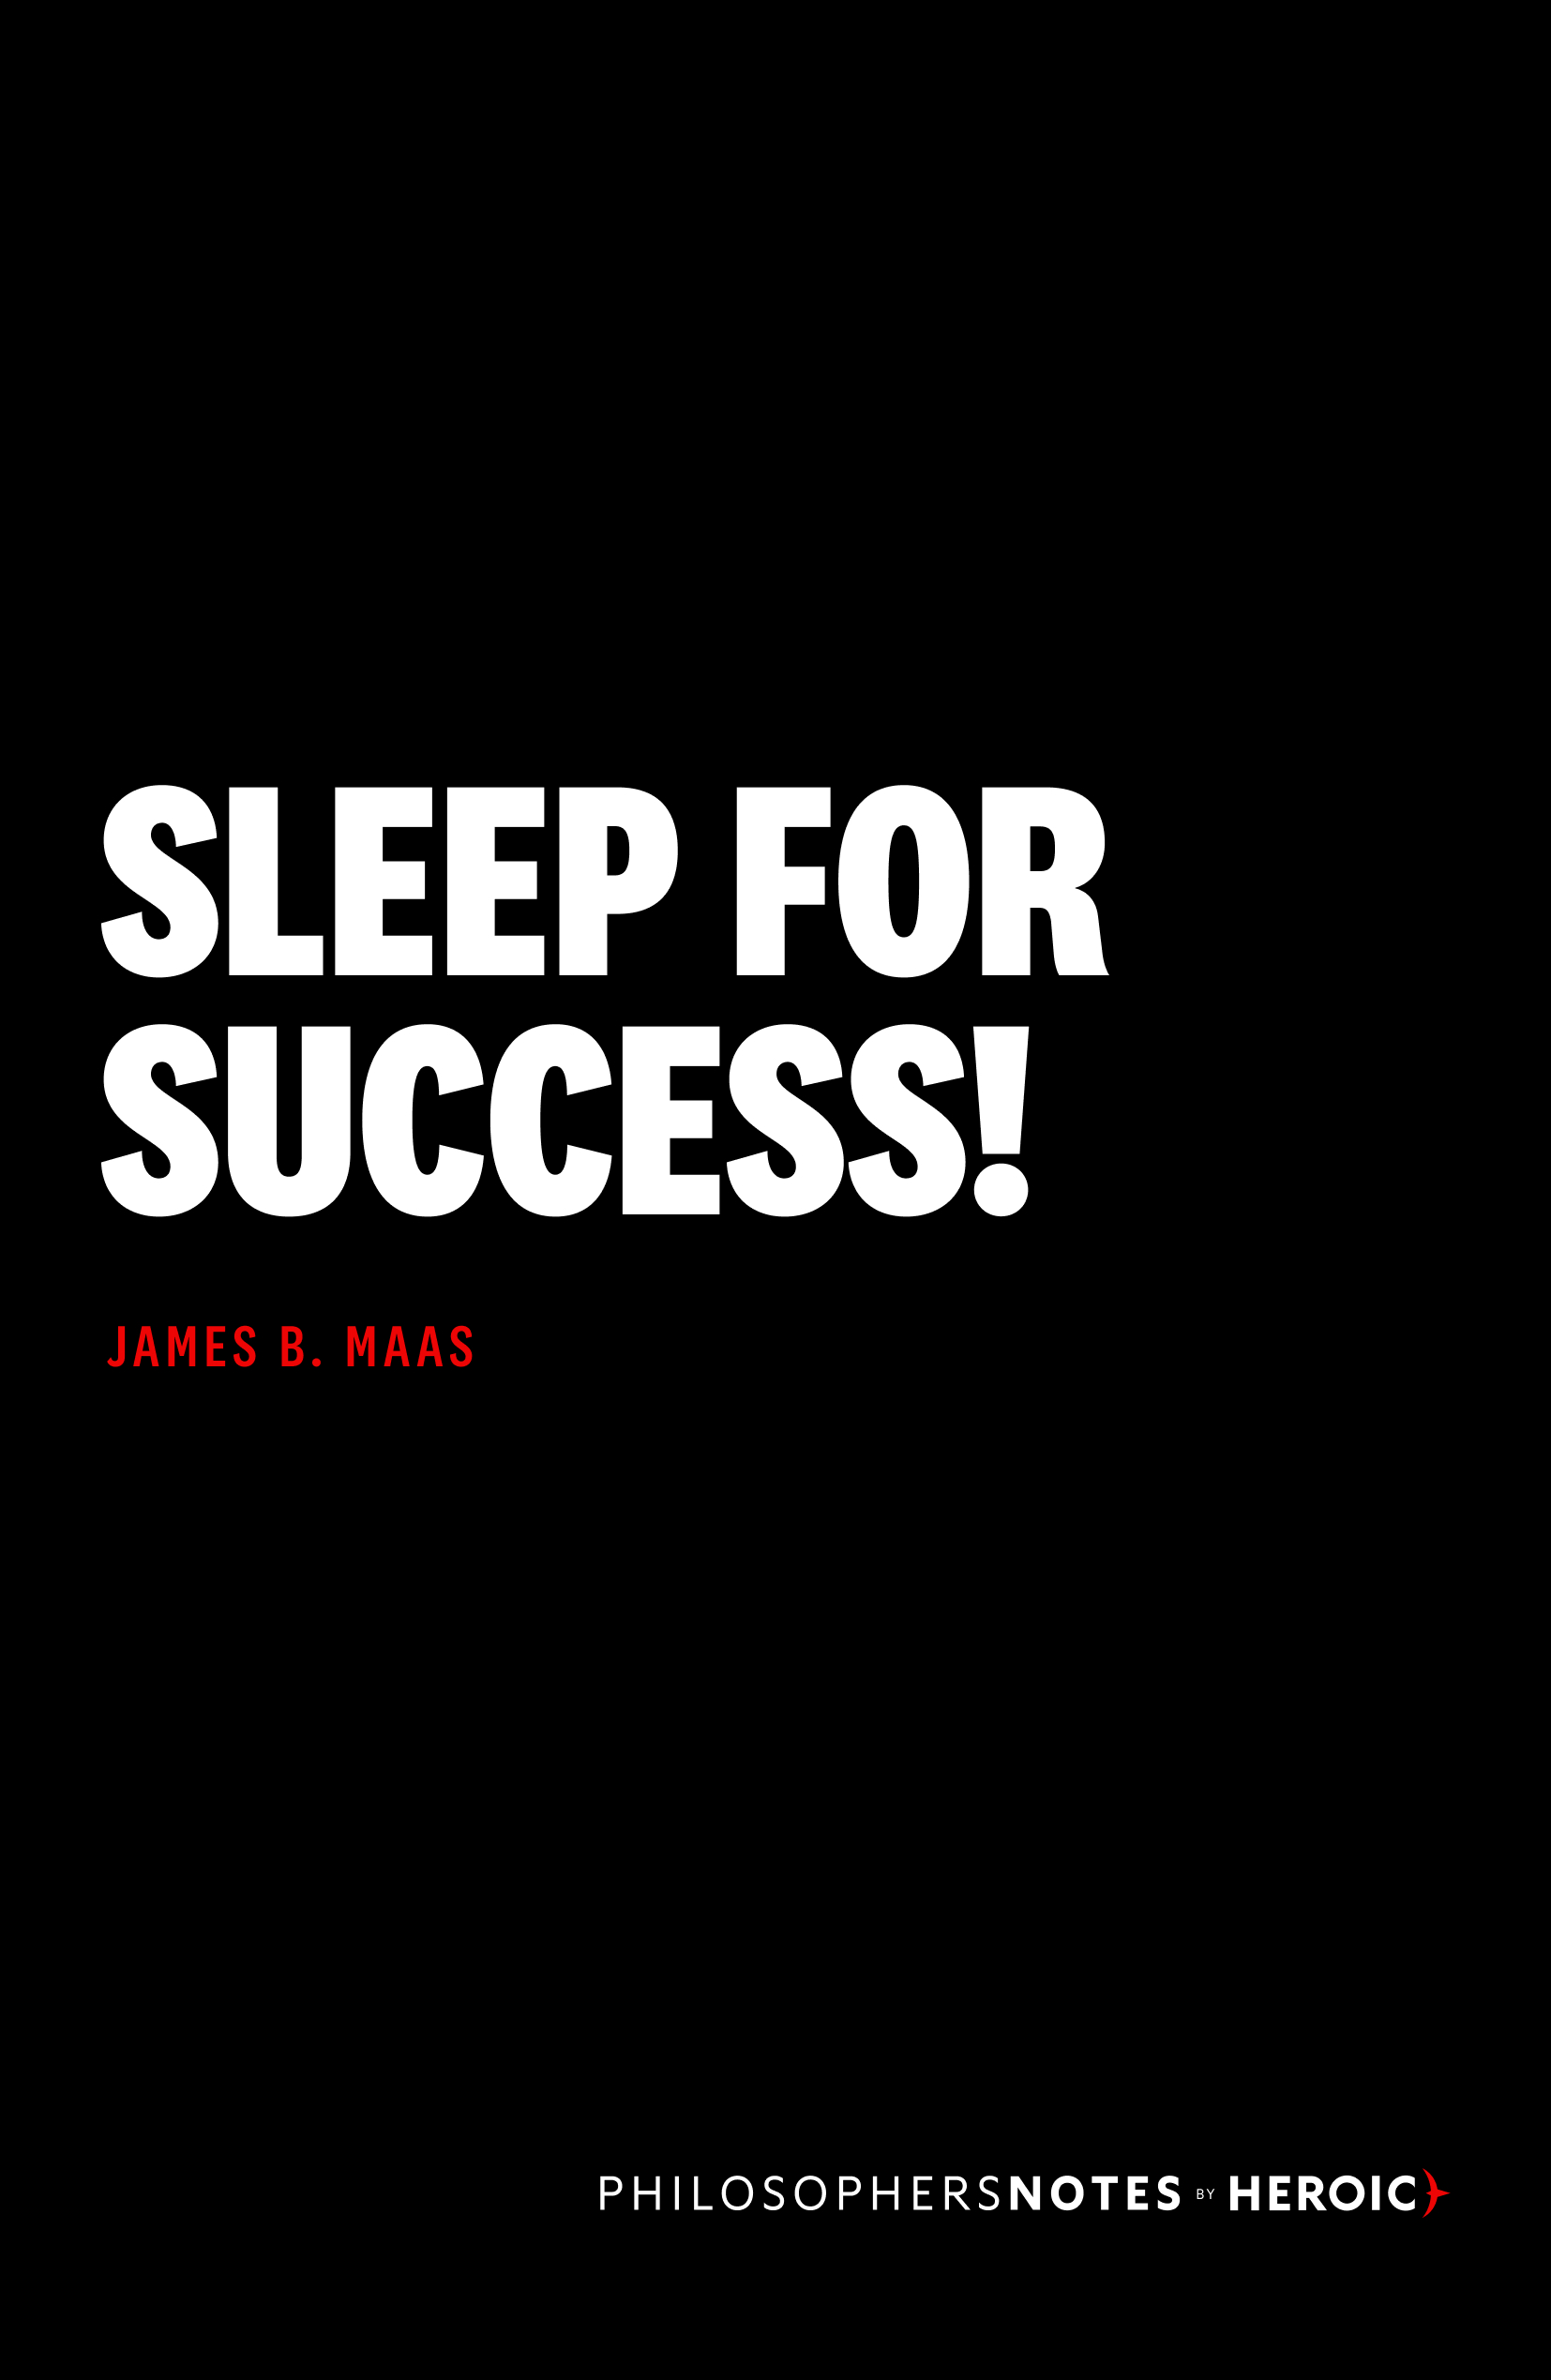 Sleep for Success!